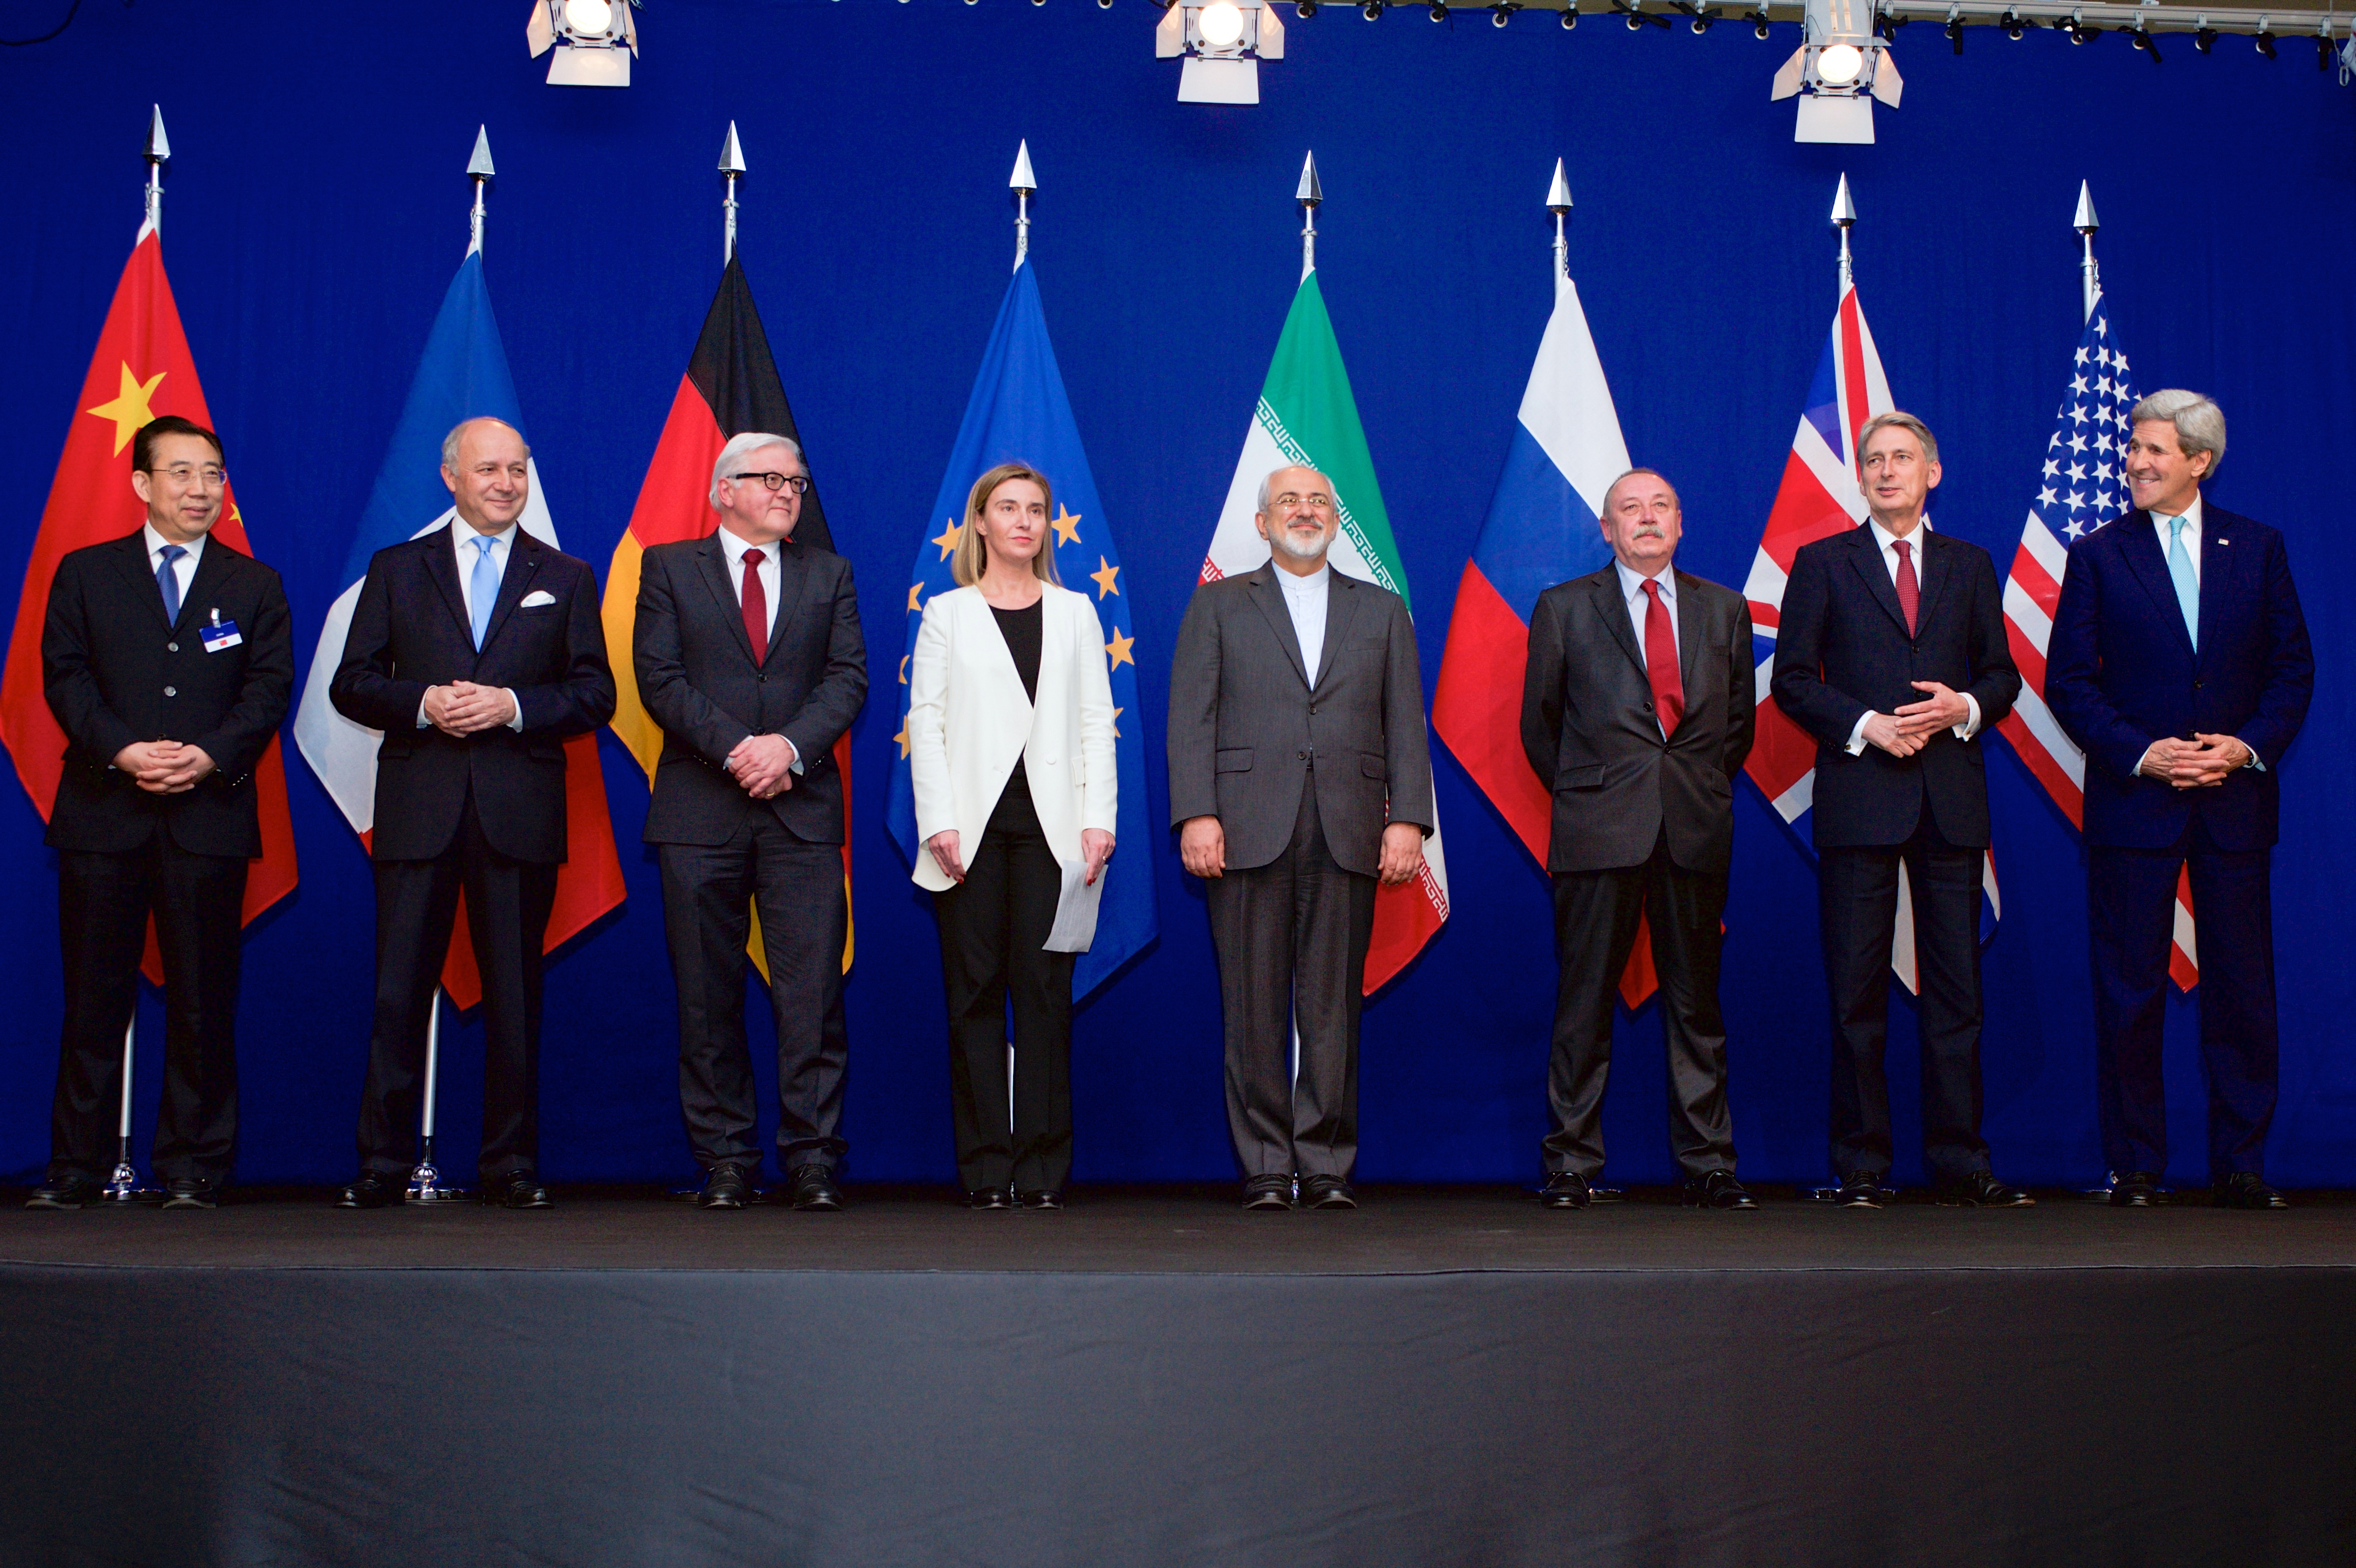 Iran Deal Secret Side Deals Revealed: Iran Given Pass On Exceeding Uranium Limit In Order To Meet Deadline Featured